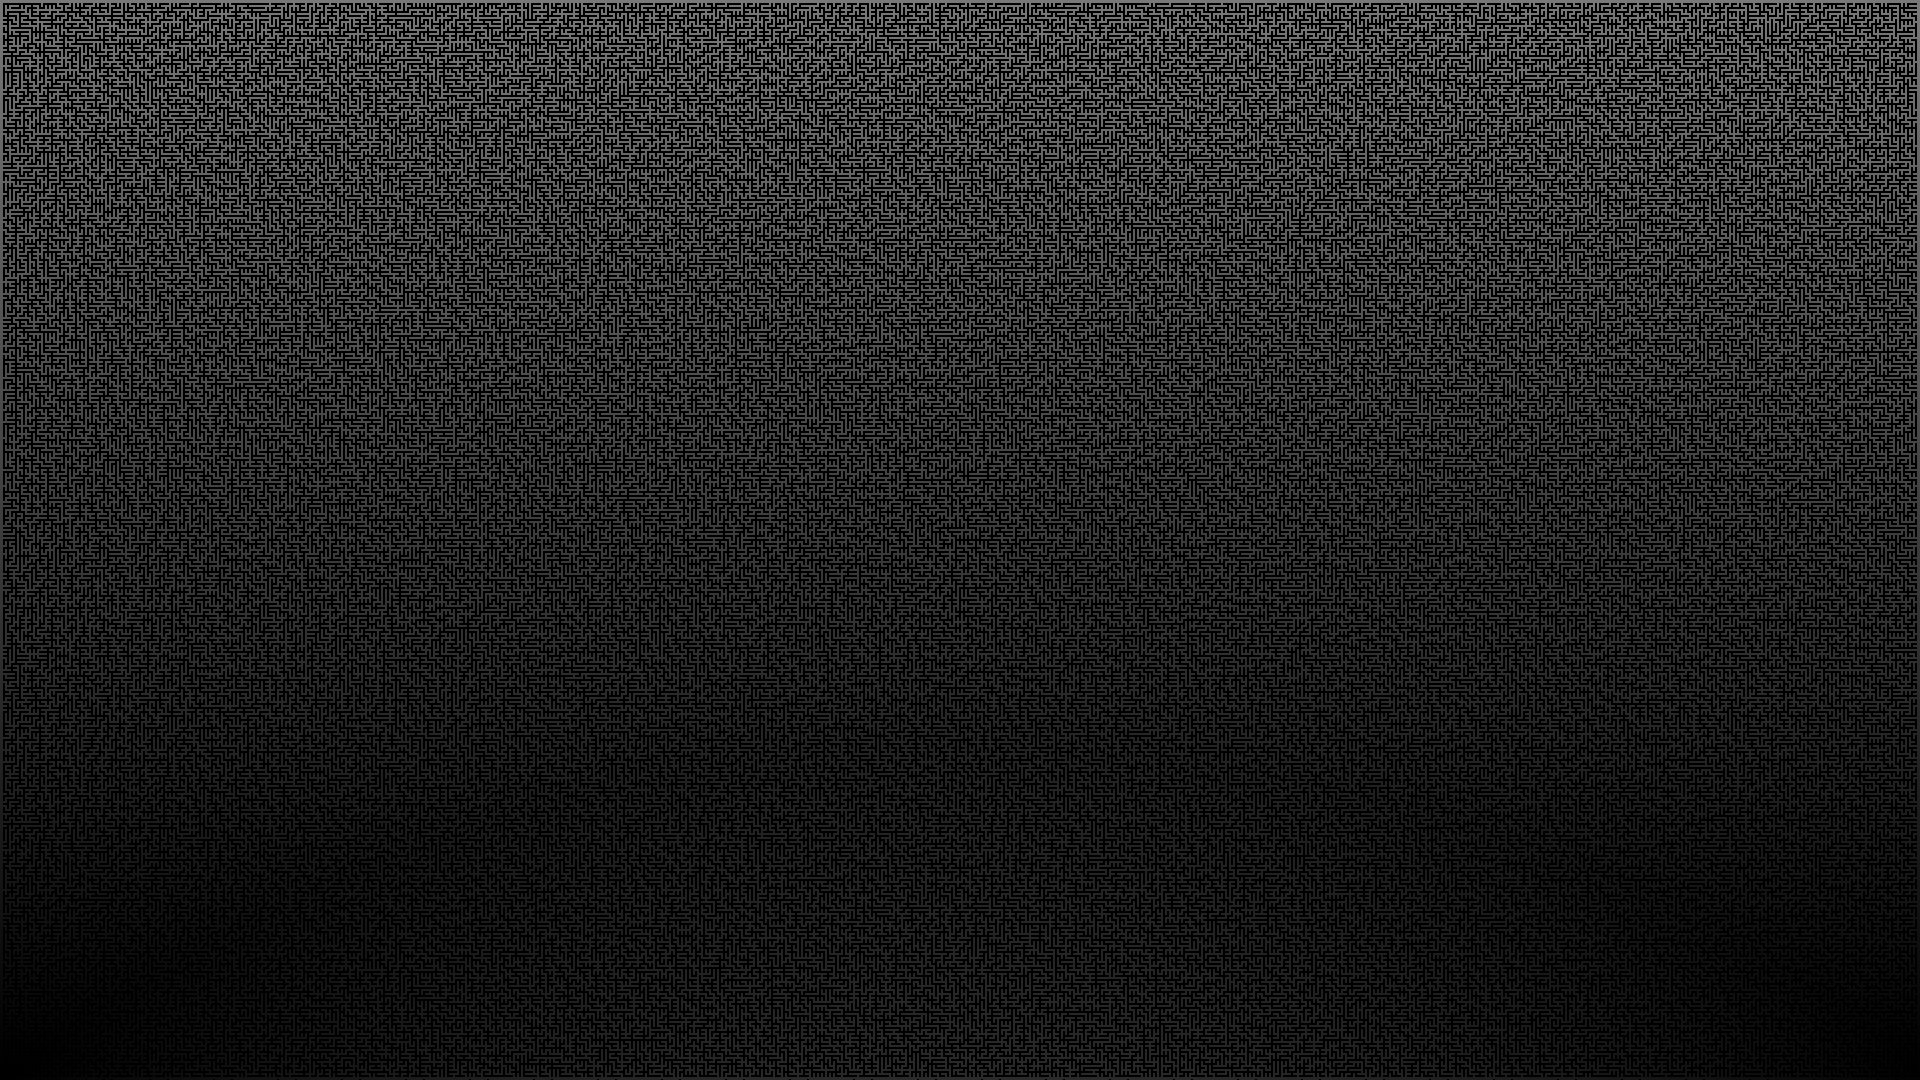 Maze background by caseycole11 on deviantart - Wallpaper images ...